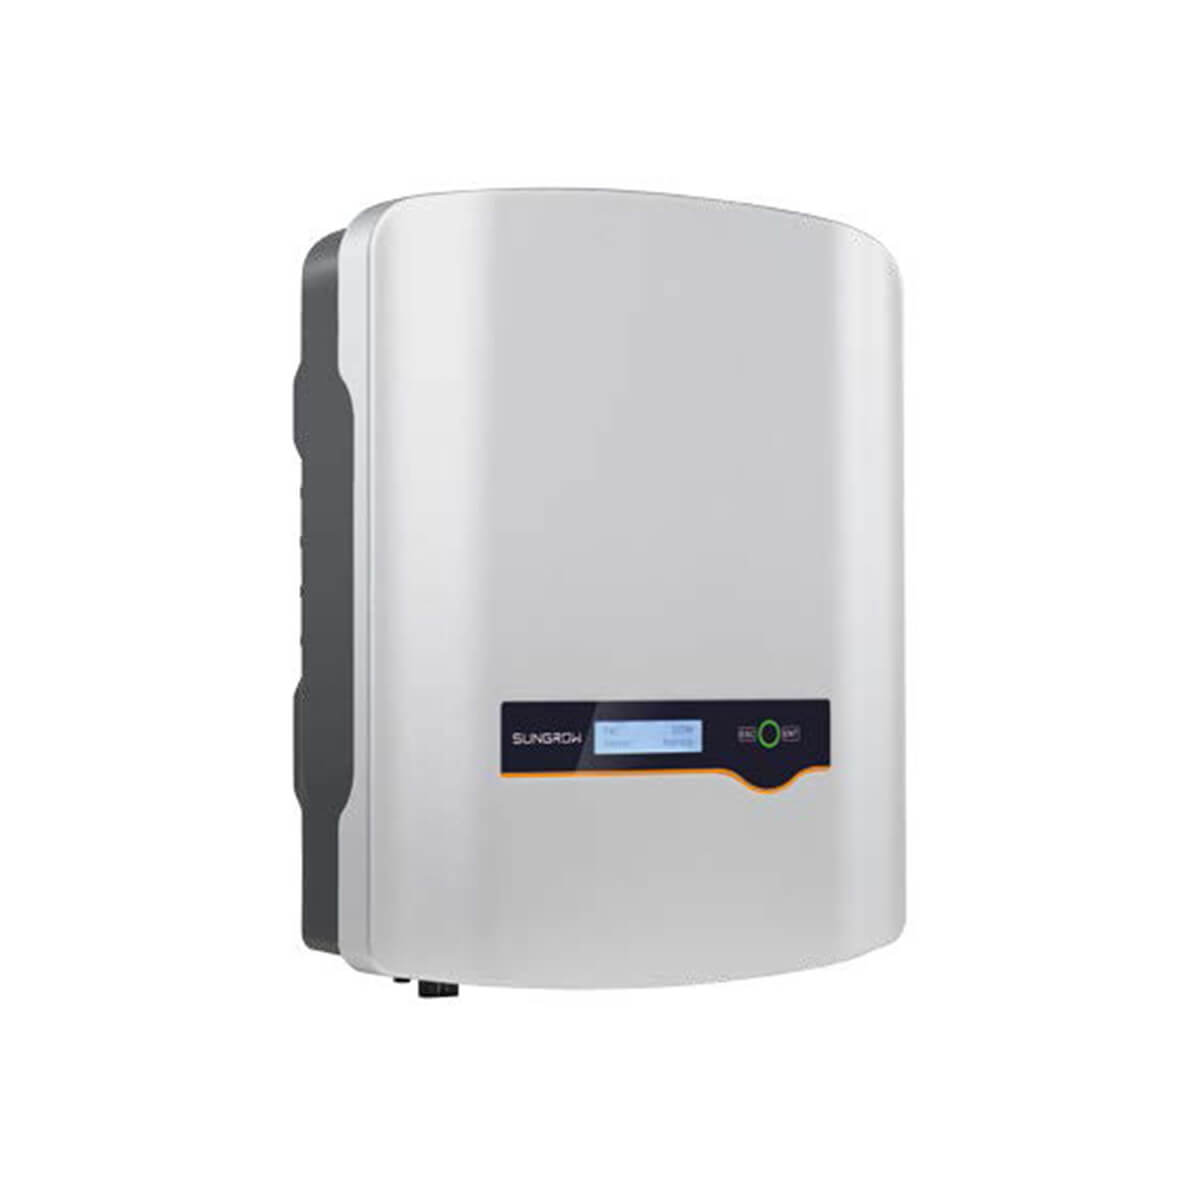 sungrow 2kW inverter, sungrow sg2k-s 2kW inverter, sungrow sg2k-s inverter, sungrow sg2k-s, sungrow 2 kW